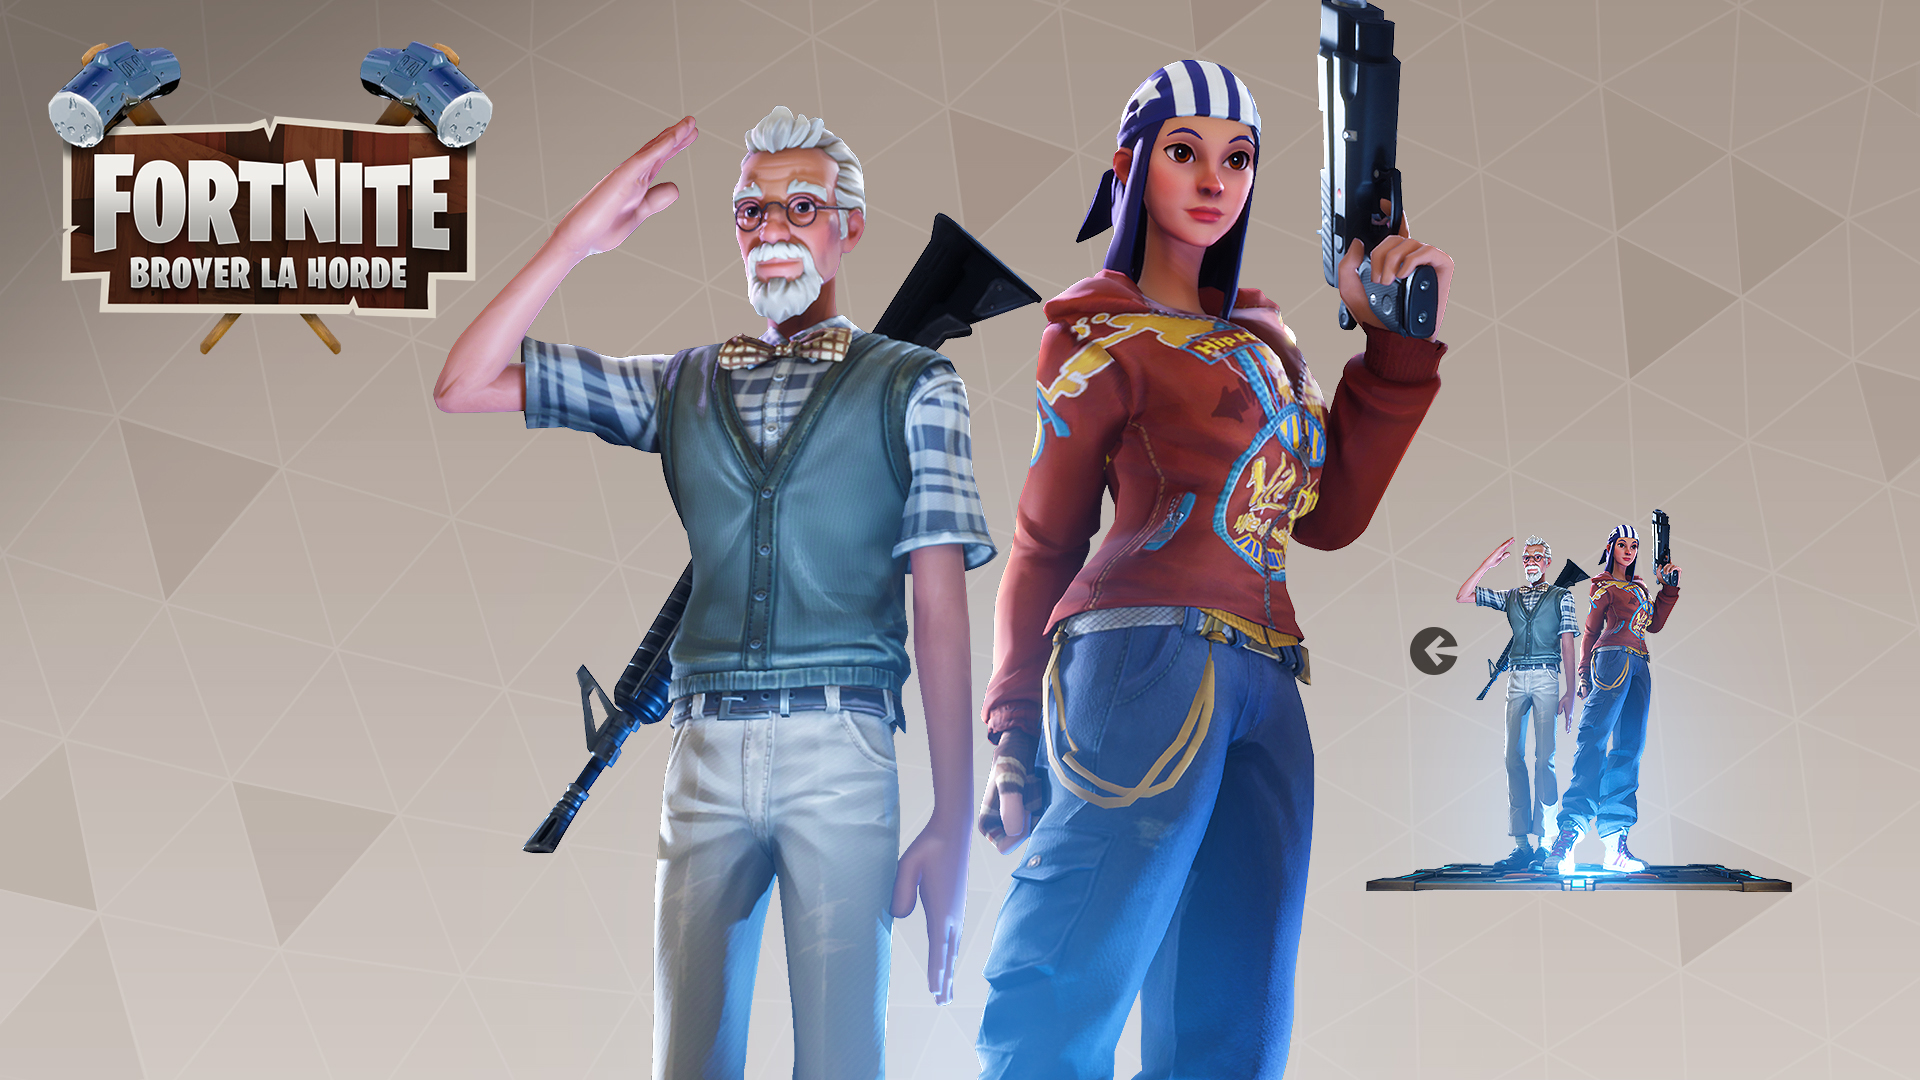 Fortnite%2Fblog%2Fea-1-7-patch-notes%2FFR-HB-Defenders-1920x1080-325ed6ecbe83cb596fd0004d3b7c03417c36d405